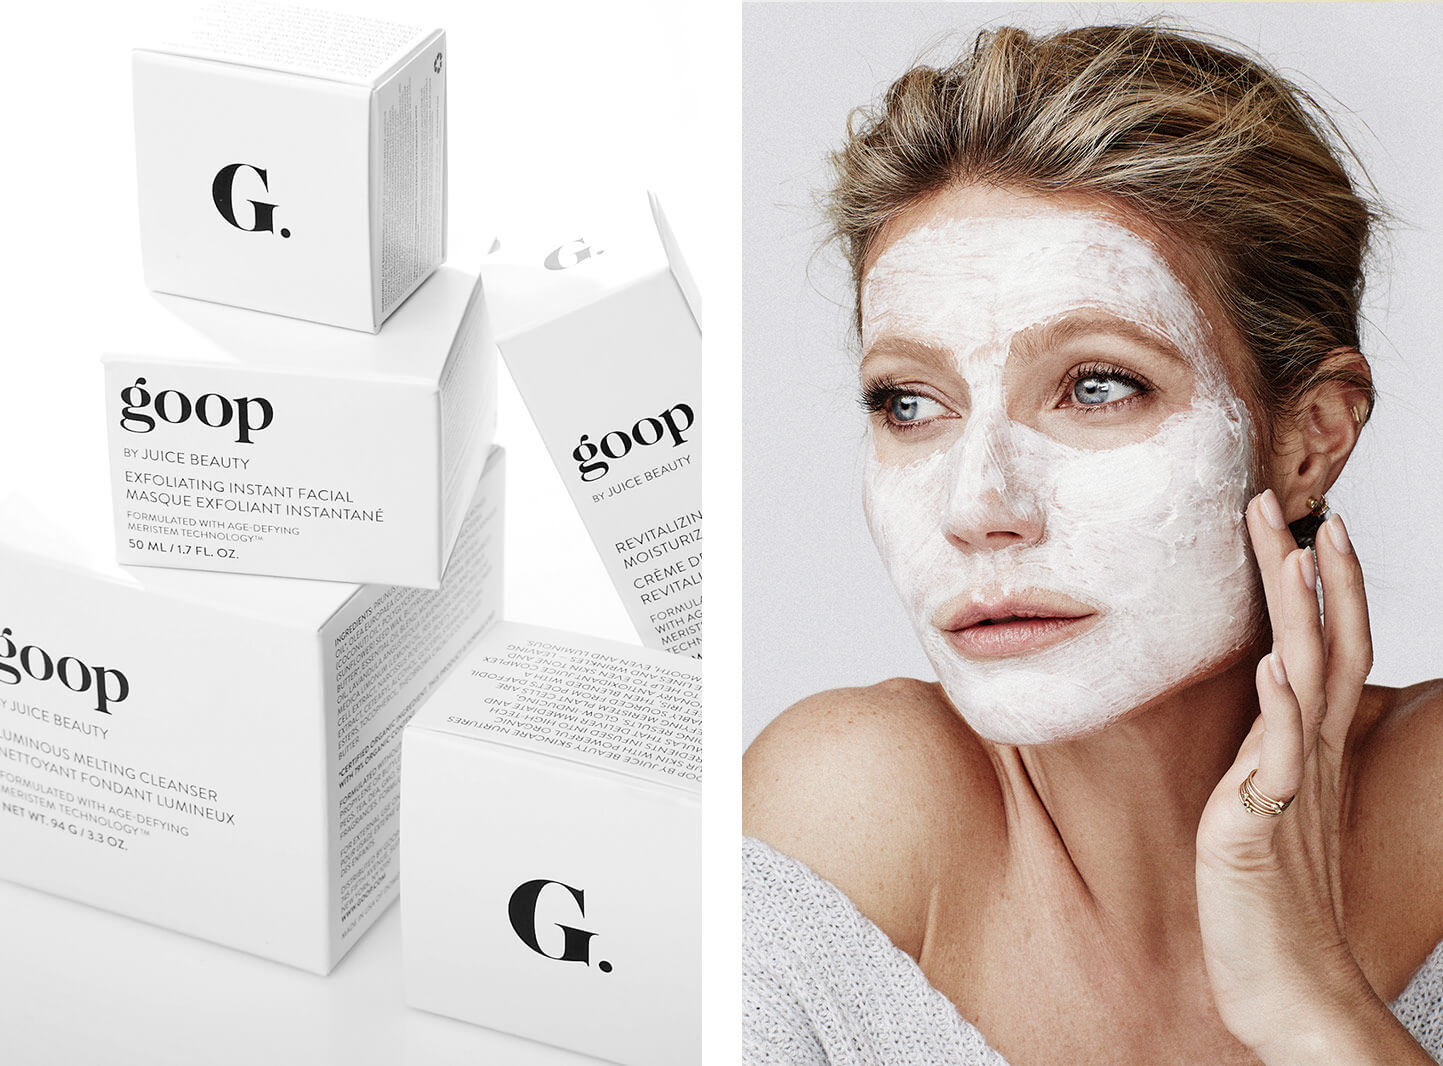 yes that's how i look in a face mask. notice how big the image is, Pinterest likes and allows for bigger, longer images.